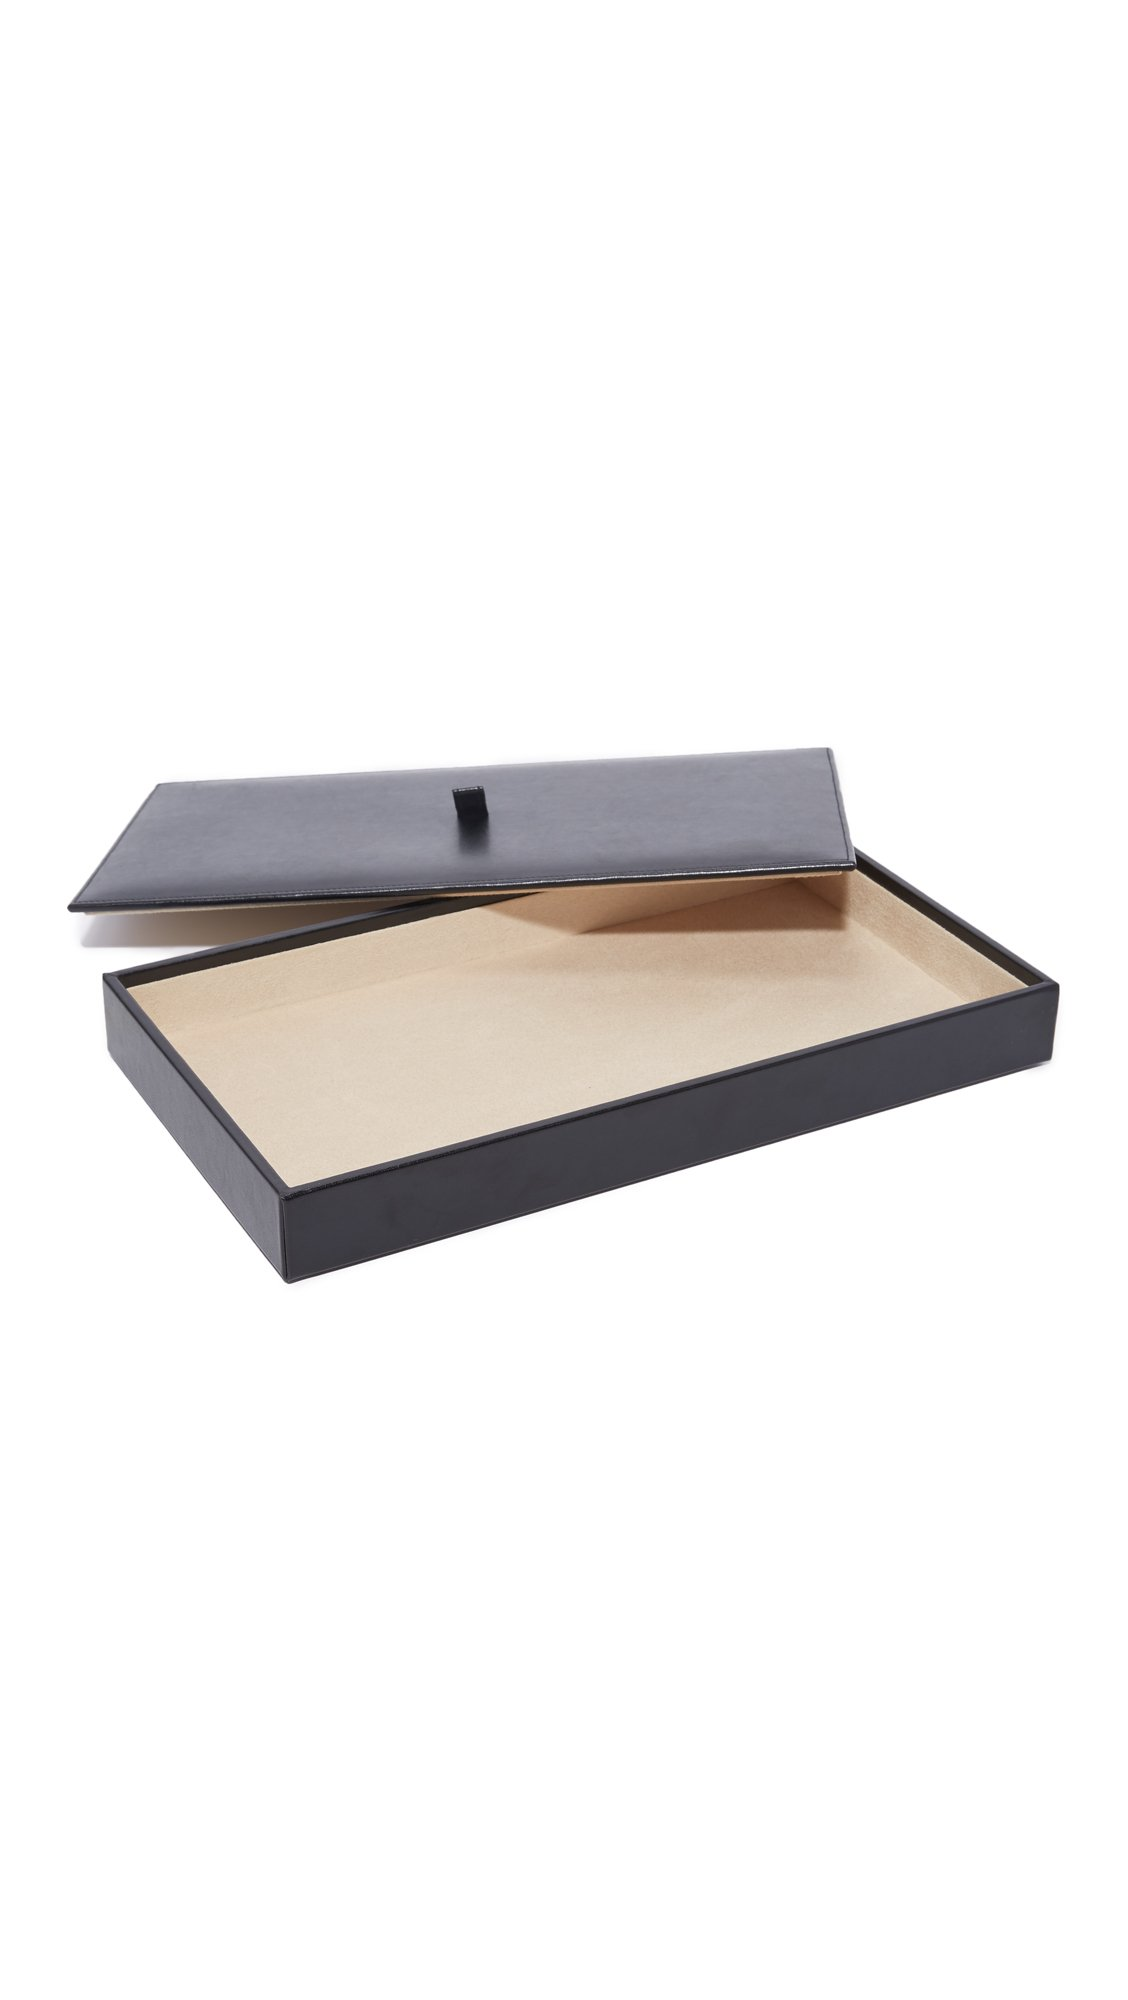 Gift Boutique Women's WOLF Vault Tray Set with Lid, Black, One Size